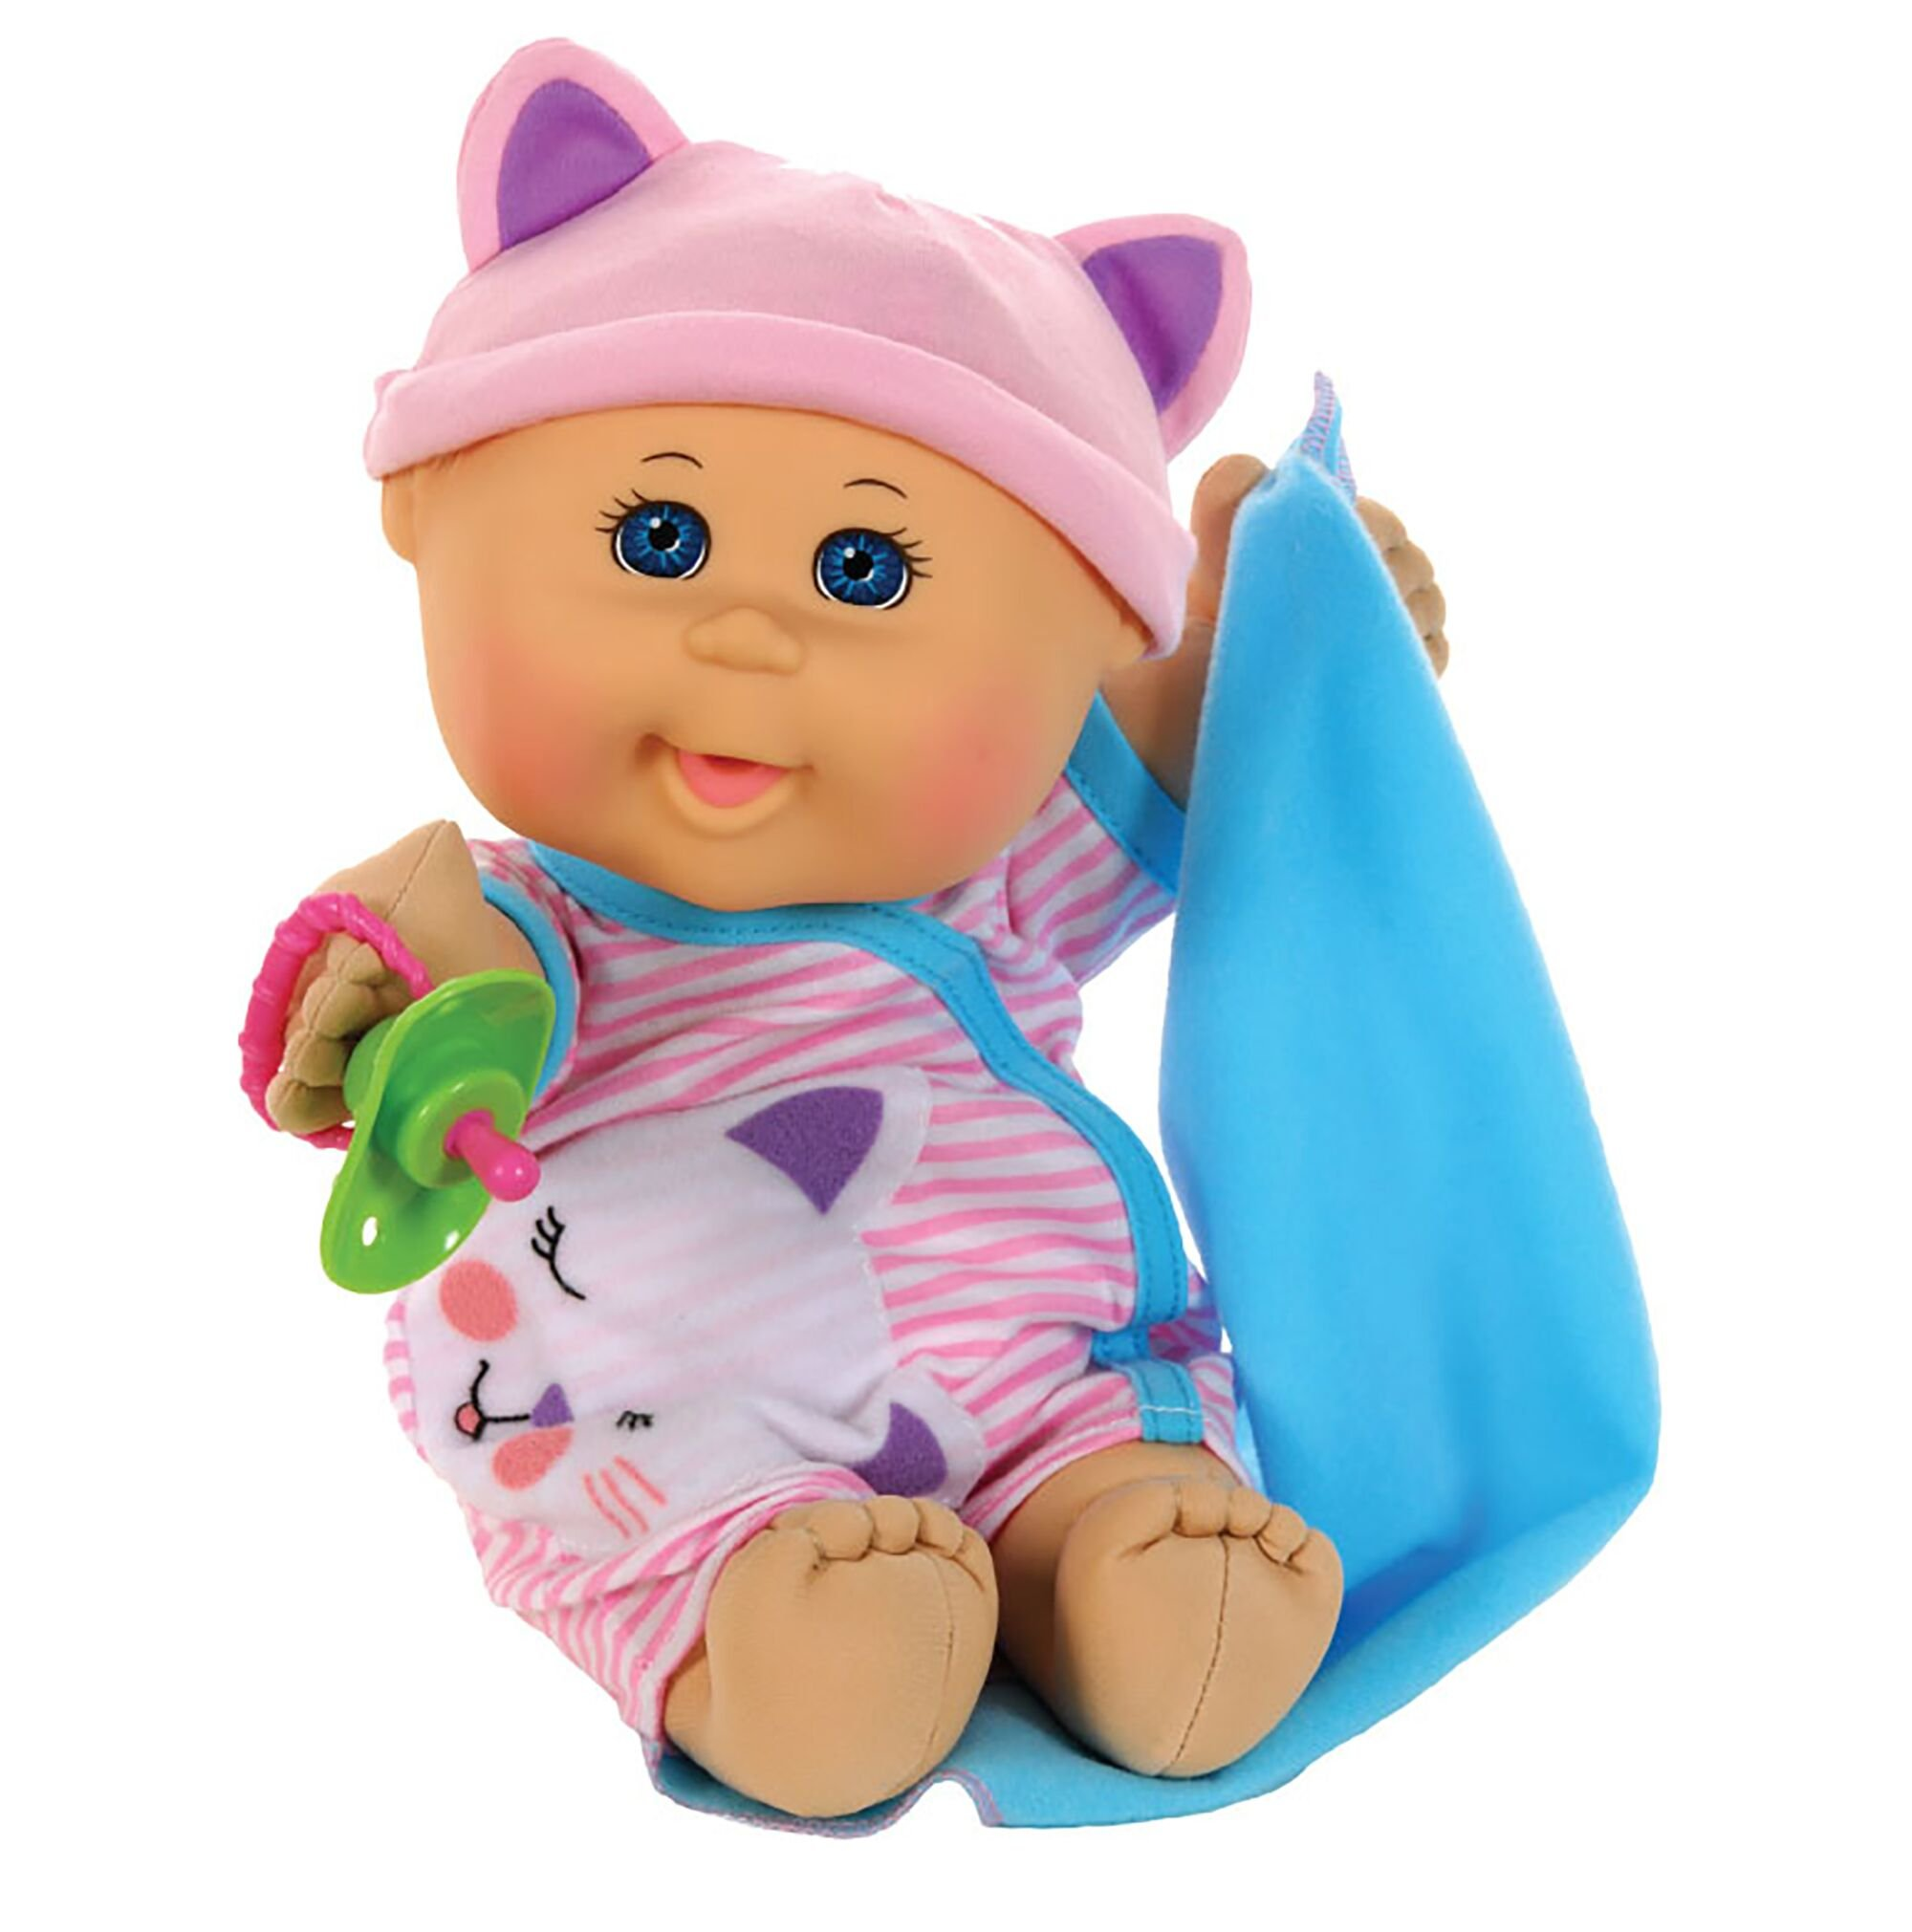 Cabbage Patch Kids 12 5 Naptime Babies Bald Blue Eye Girl Baby Doll Pink Stripe Jumper Fashion 99202us01